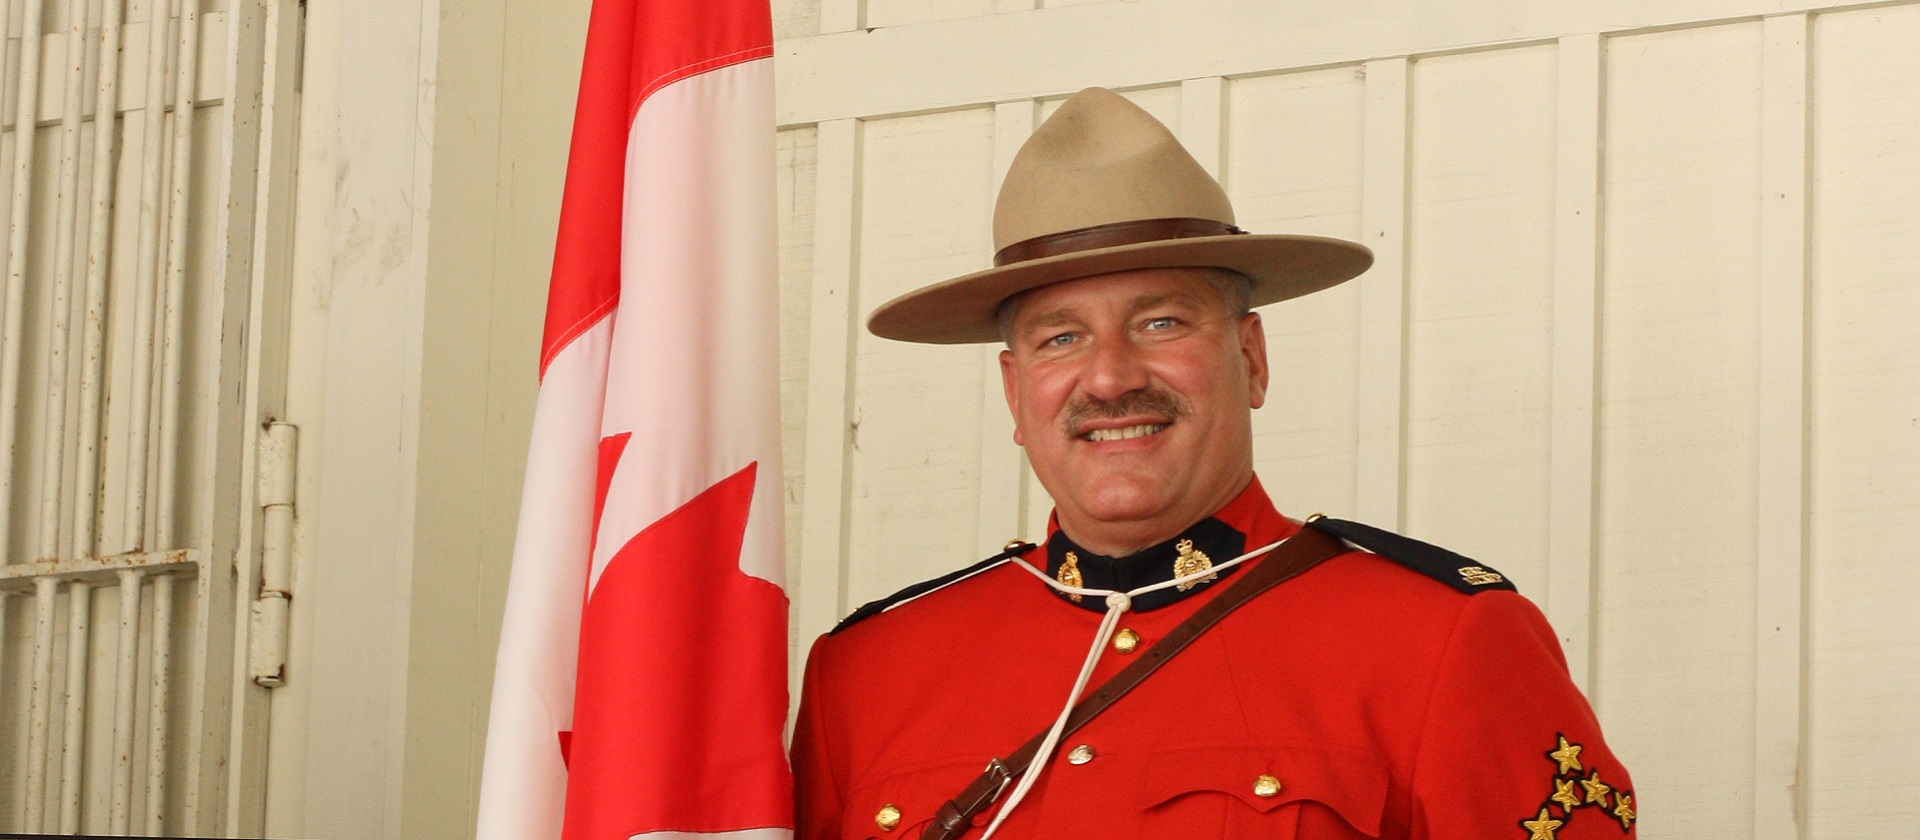 Mountie in uniform at Black Creek Canada Day event